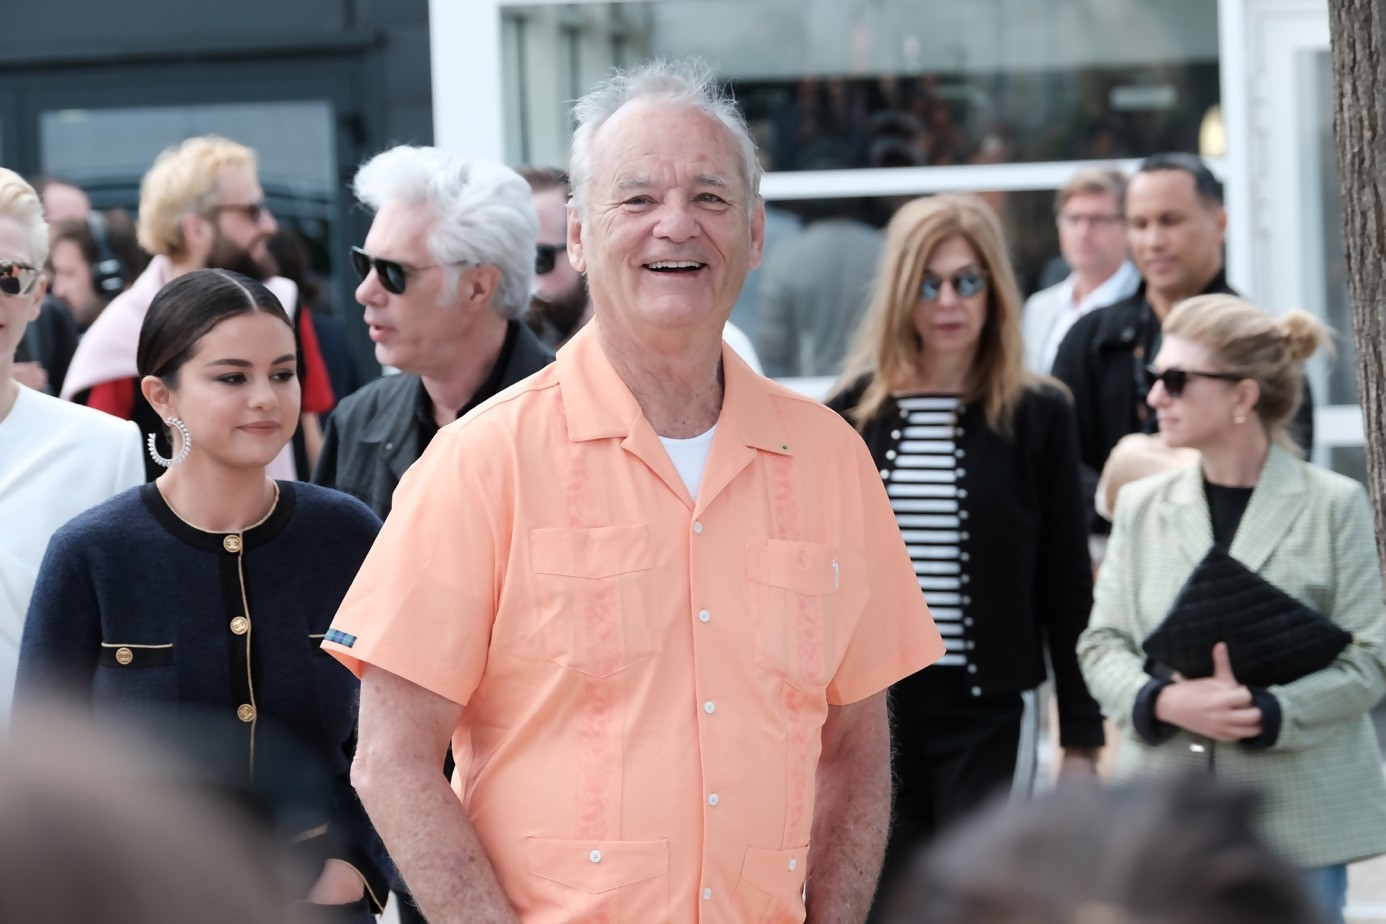 Same day : Bill Murray and Selena Gomez